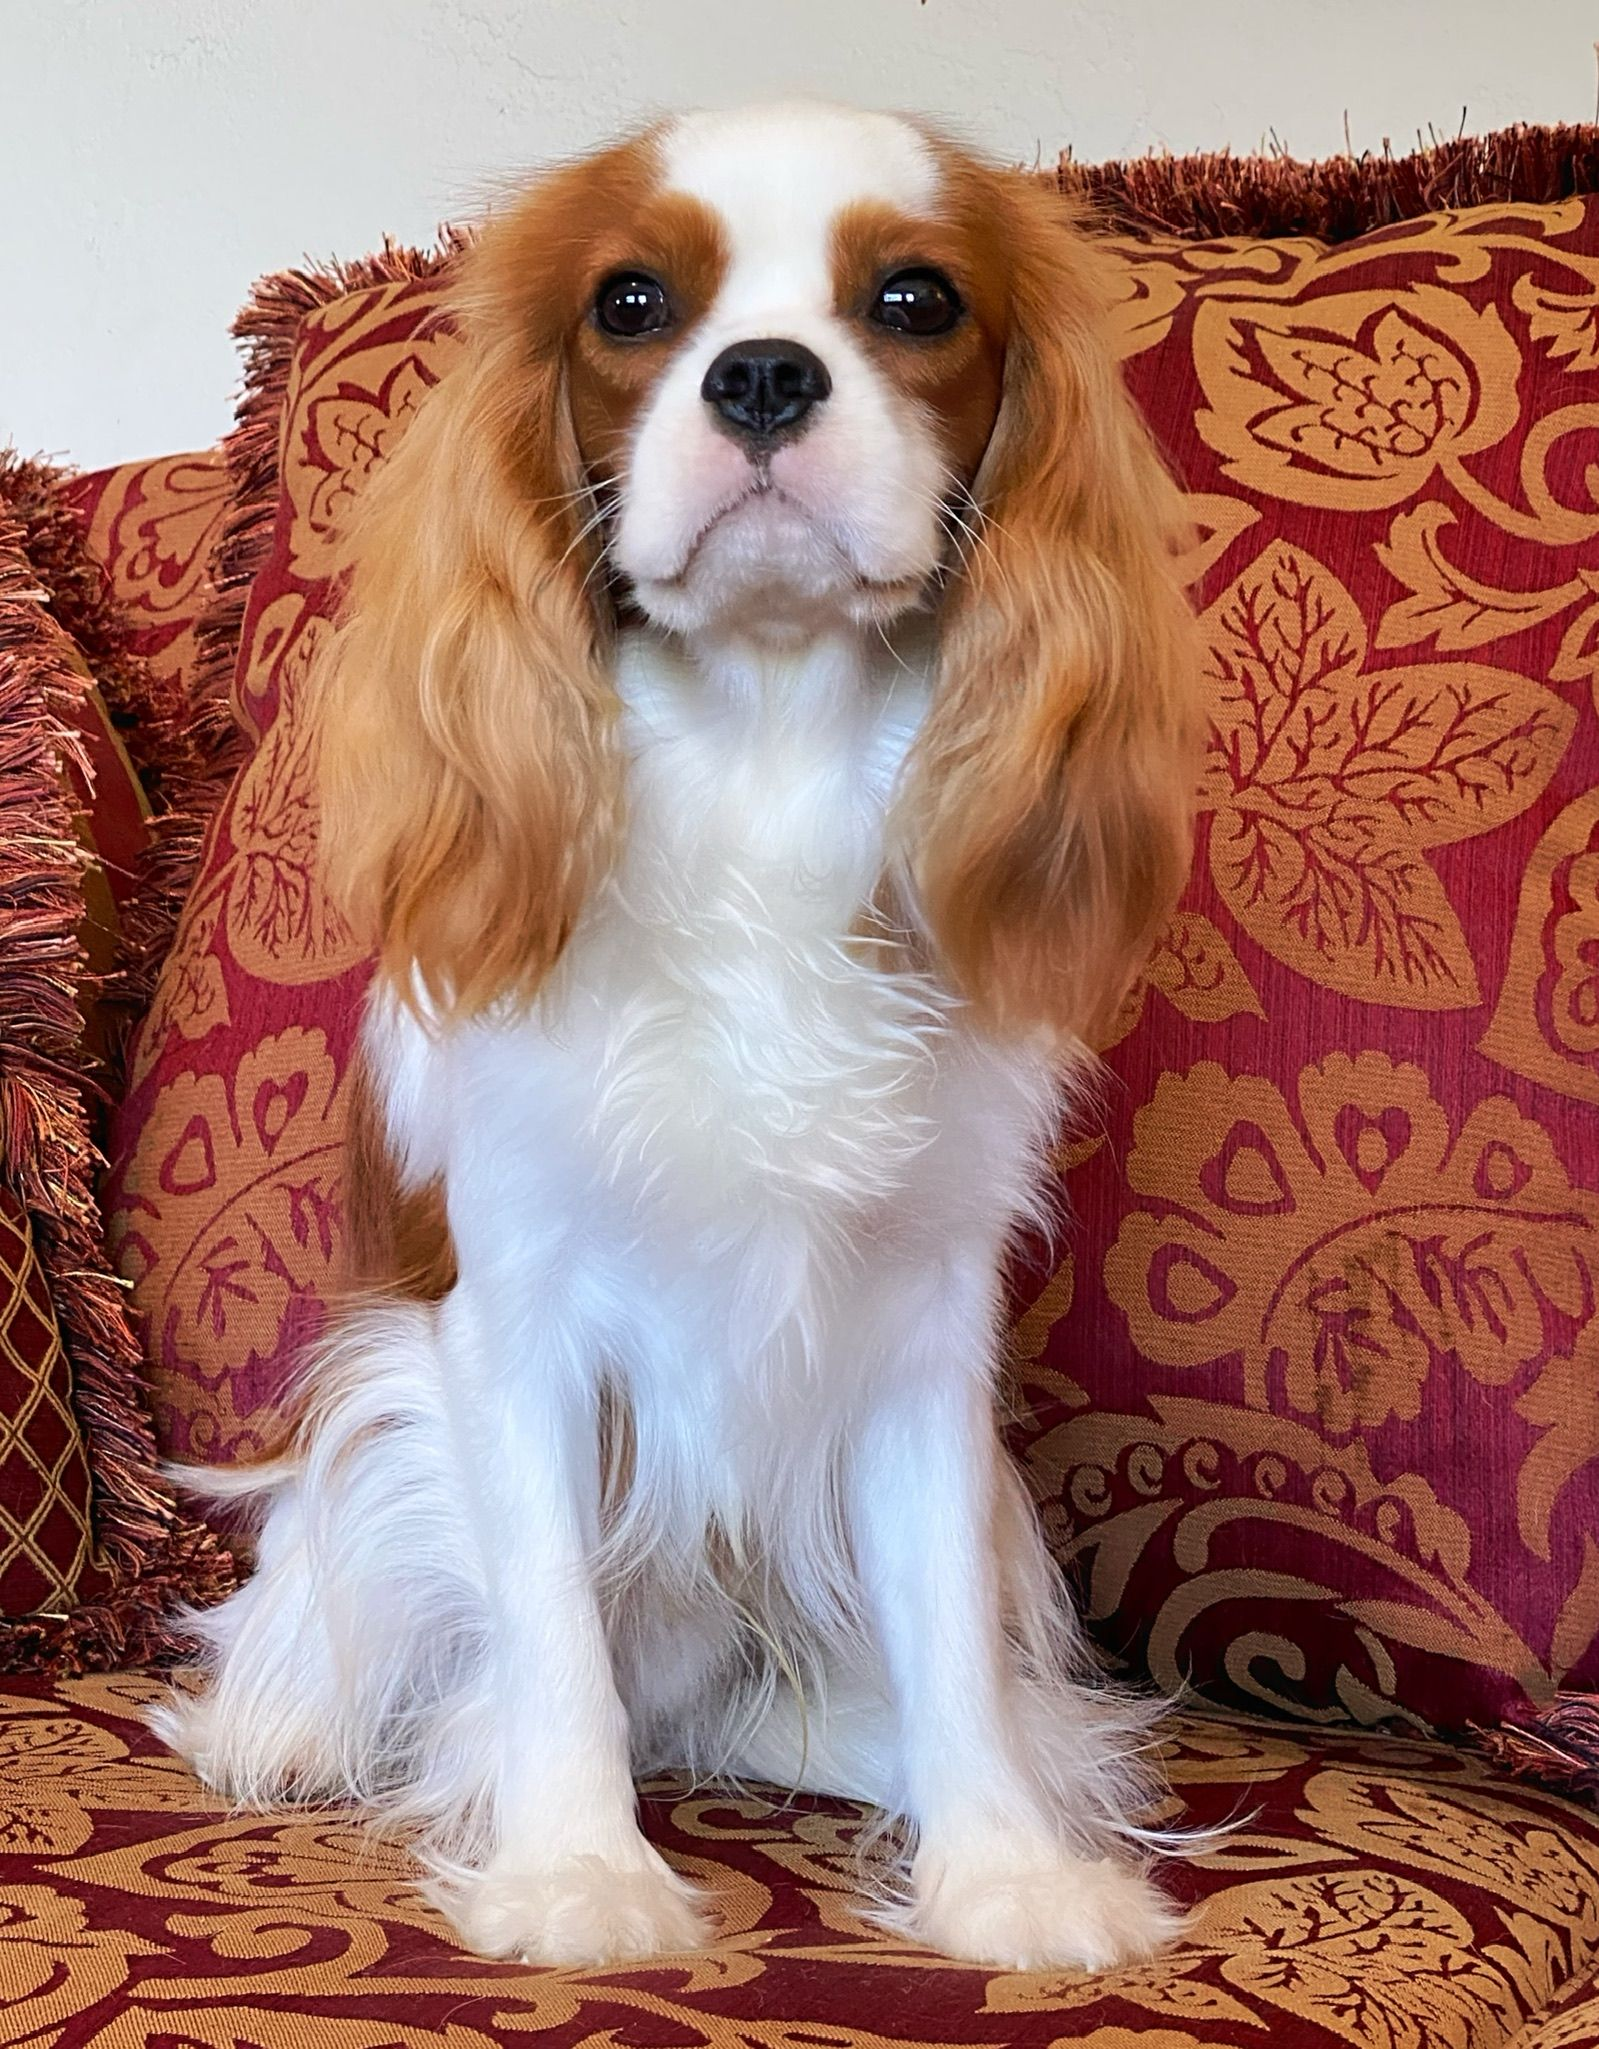 Pin By World Class Cavaliers On Cavalier King Charles Spaniel Breeder In 2020 King Charles Spaniel Cavalier King Charles King Charles Cavalier Spaniel Puppy